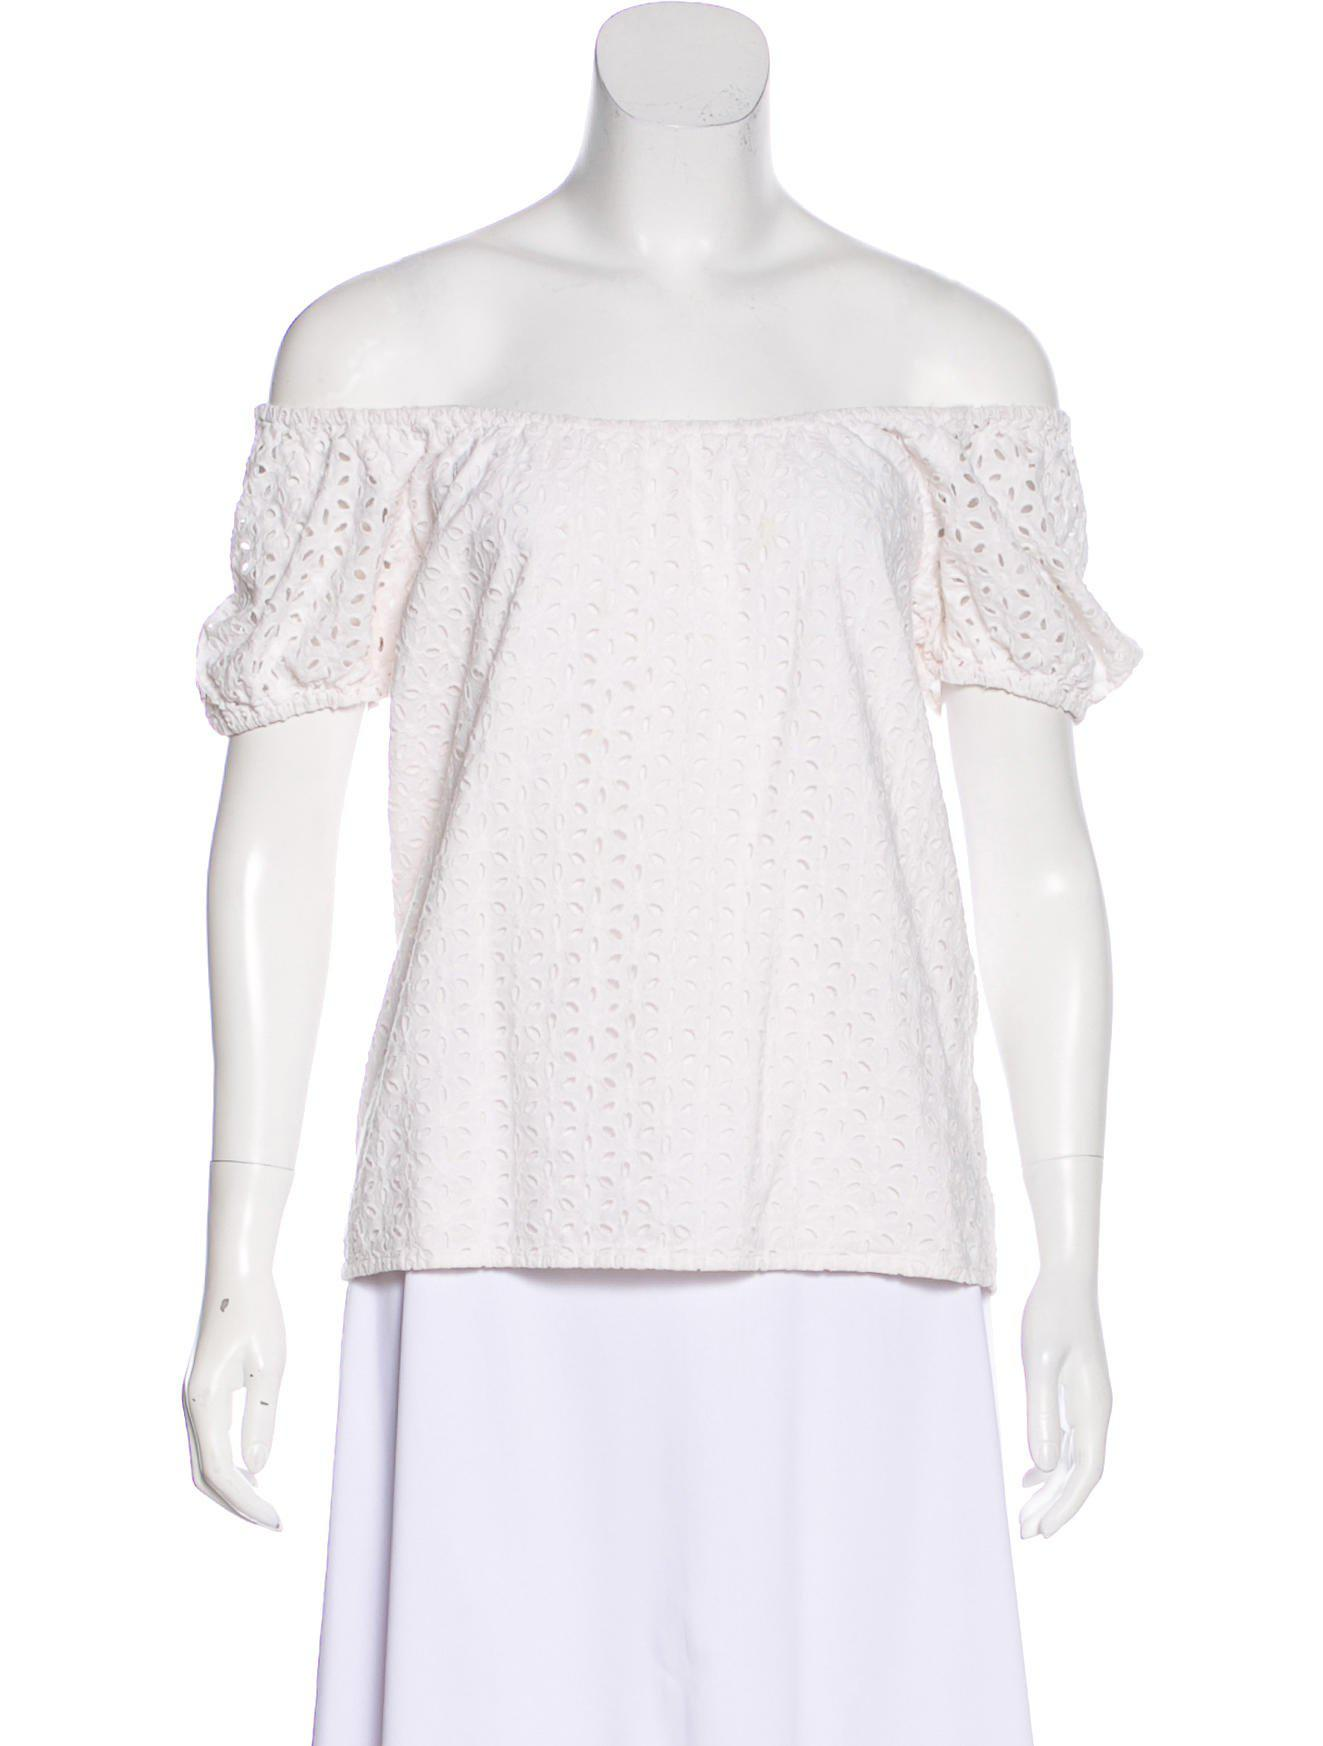 a4e9cfe213aa1d Lyst - Tibi Eyelet Off-the-shoulder Top in White